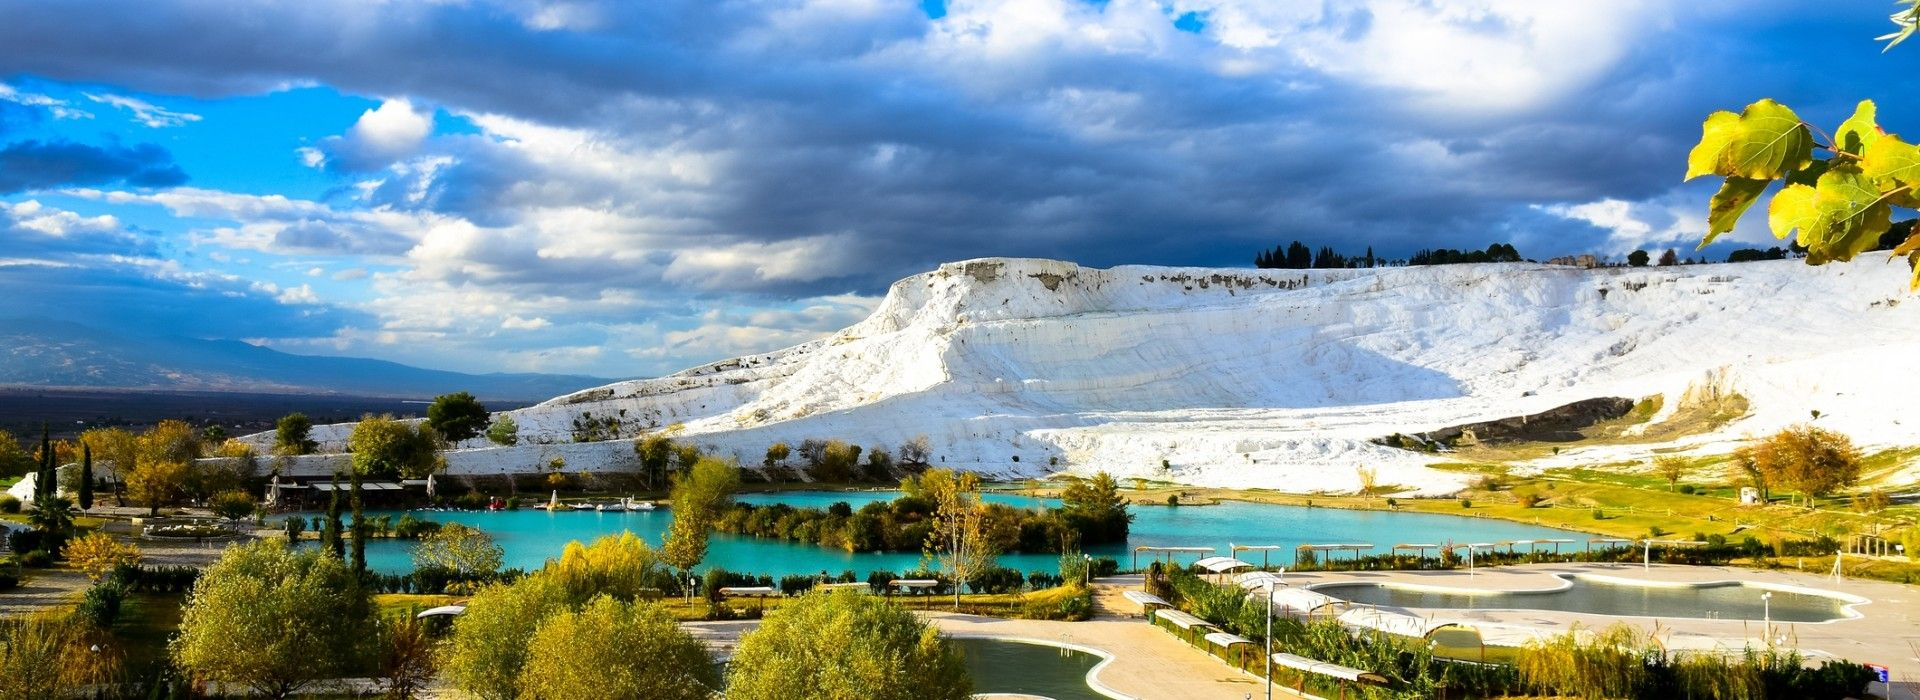 Sightseeing, attractions, culture and history Tours in Goreme